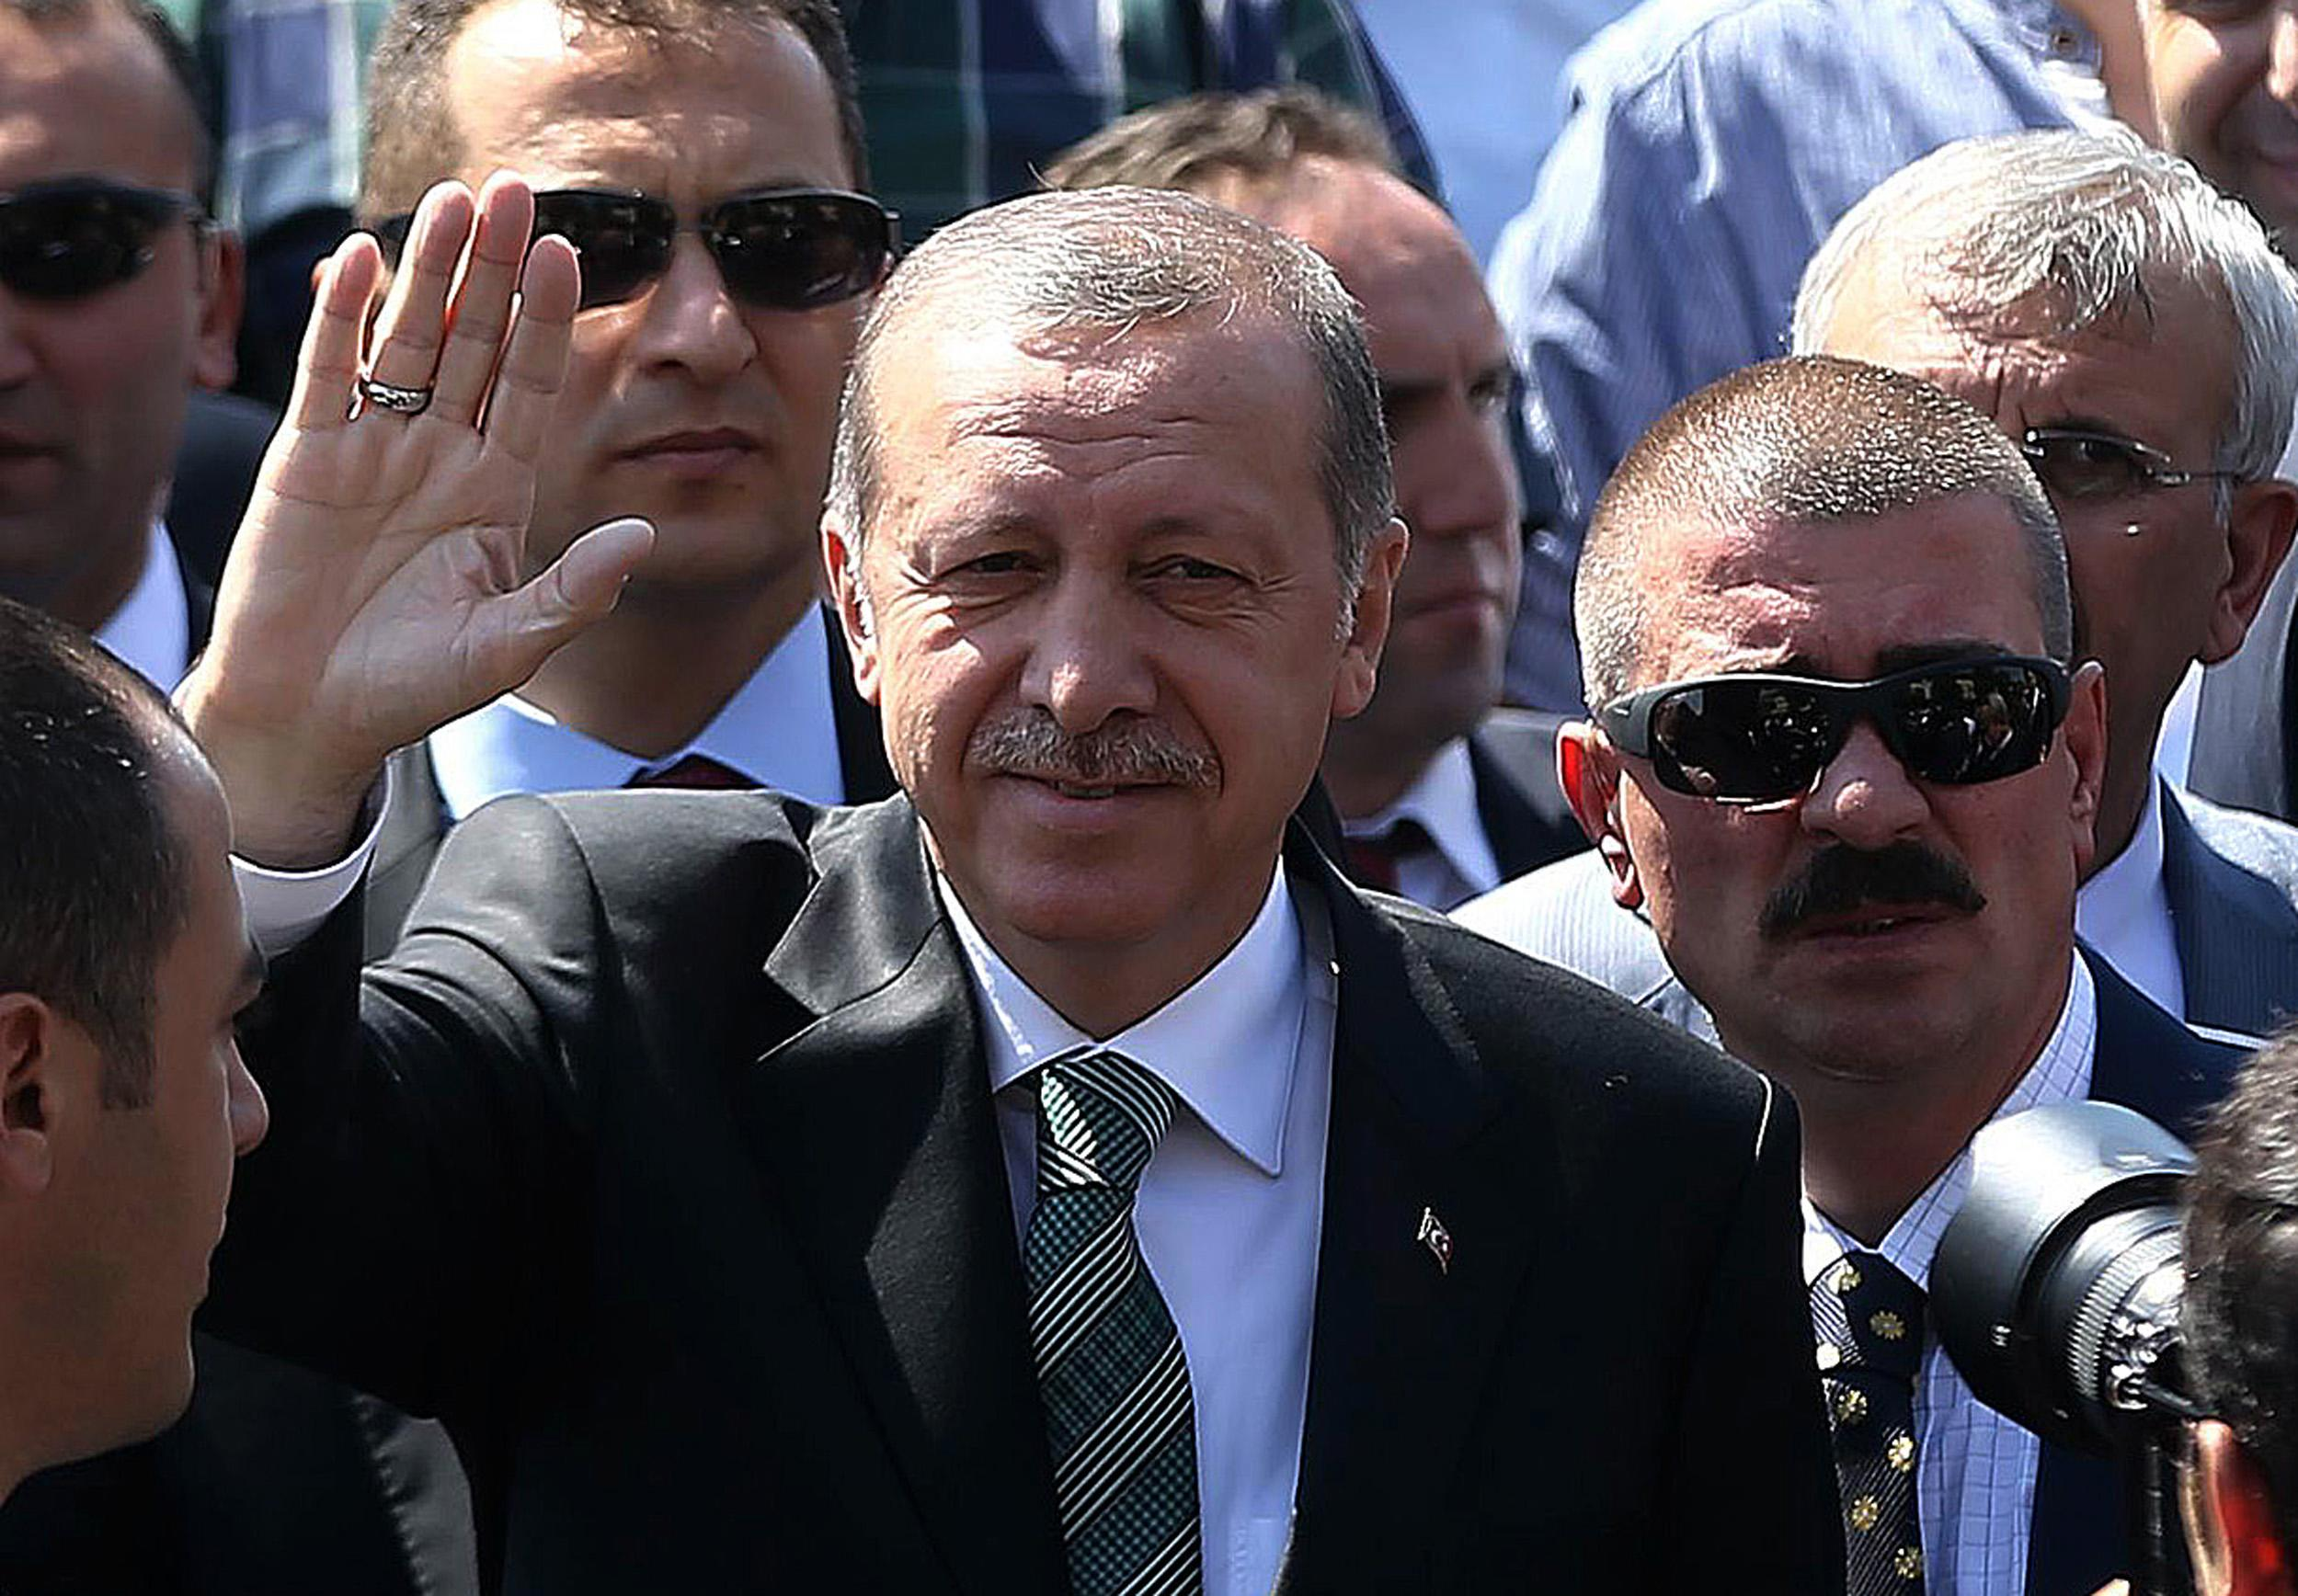 Turkey's then president-elect Recep Tayyip Erdogan waves at people after Friday prayers in Ankara, on August 15, 2014 (AFP Photo/Adem Altan)